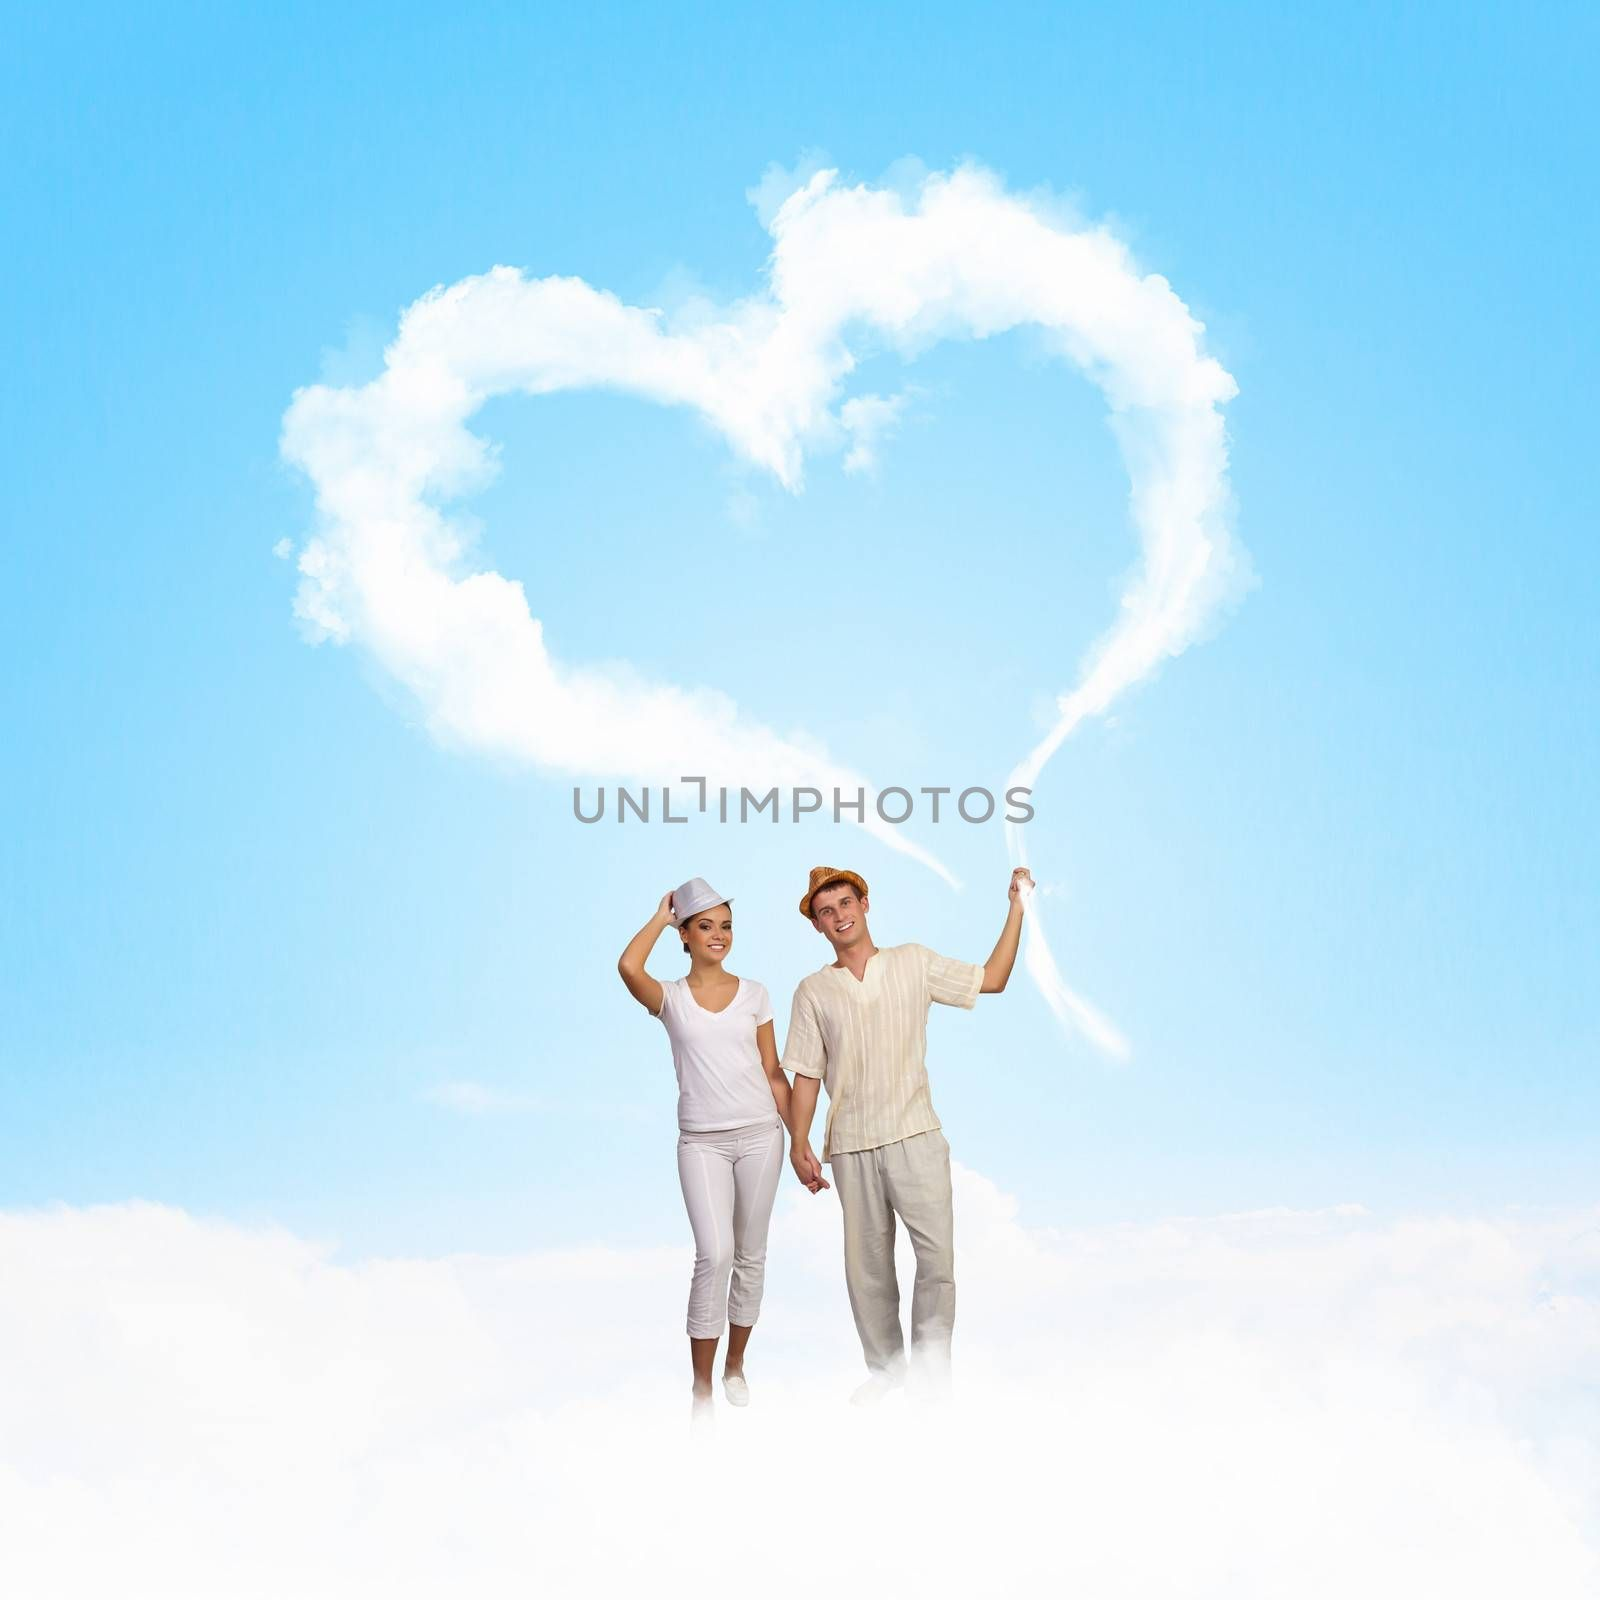 Image of young couple in love looking at each other